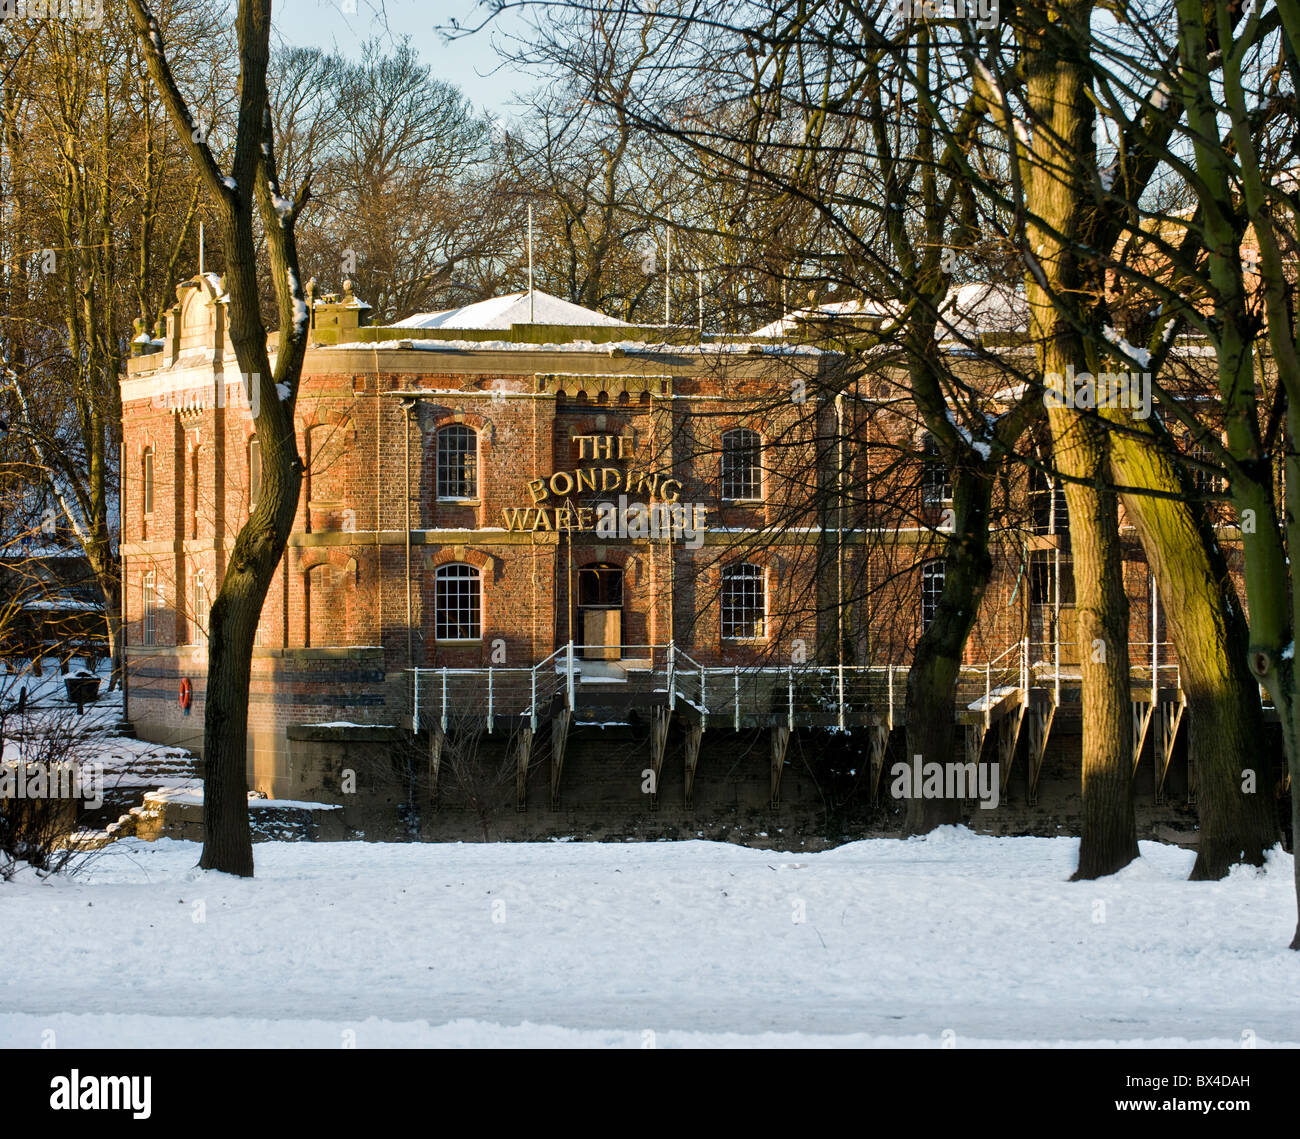 Bonding Warehouse Building in snow - Stock Image